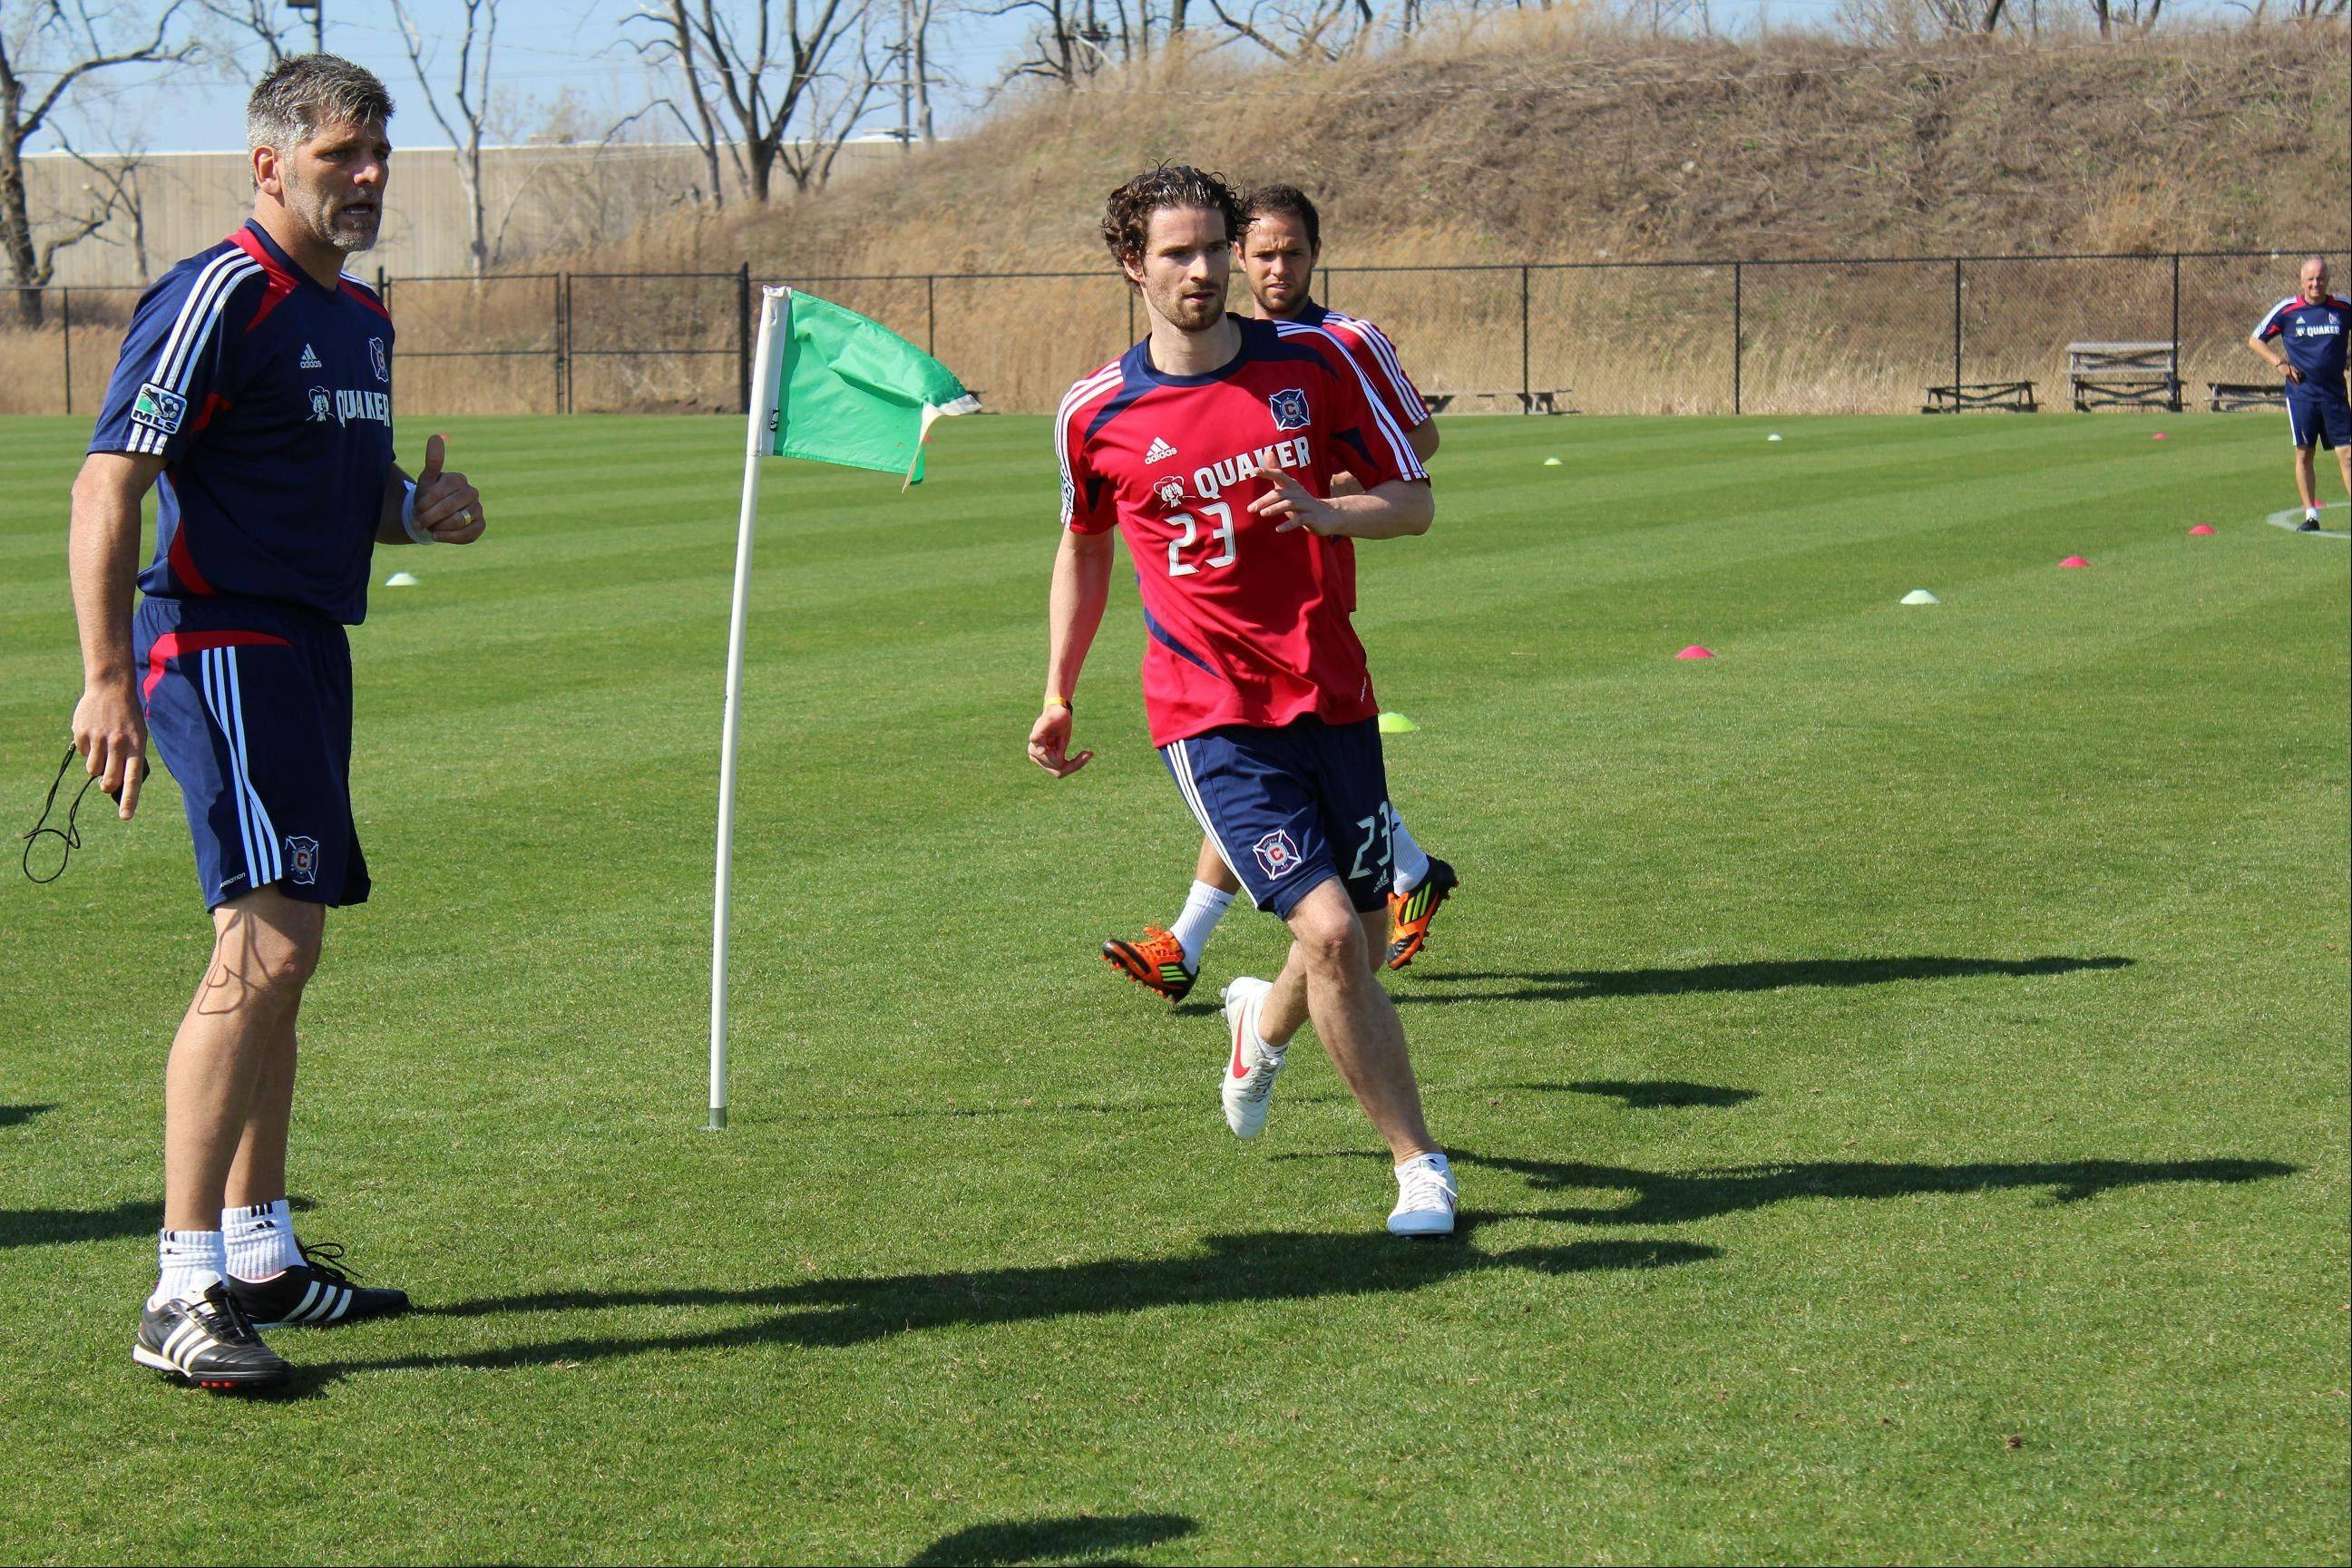 Arne Friedrich (23) says it may take two or three weeks to get in playing shape for Chicago Fire, but he already likes his teammates and his new hometown.